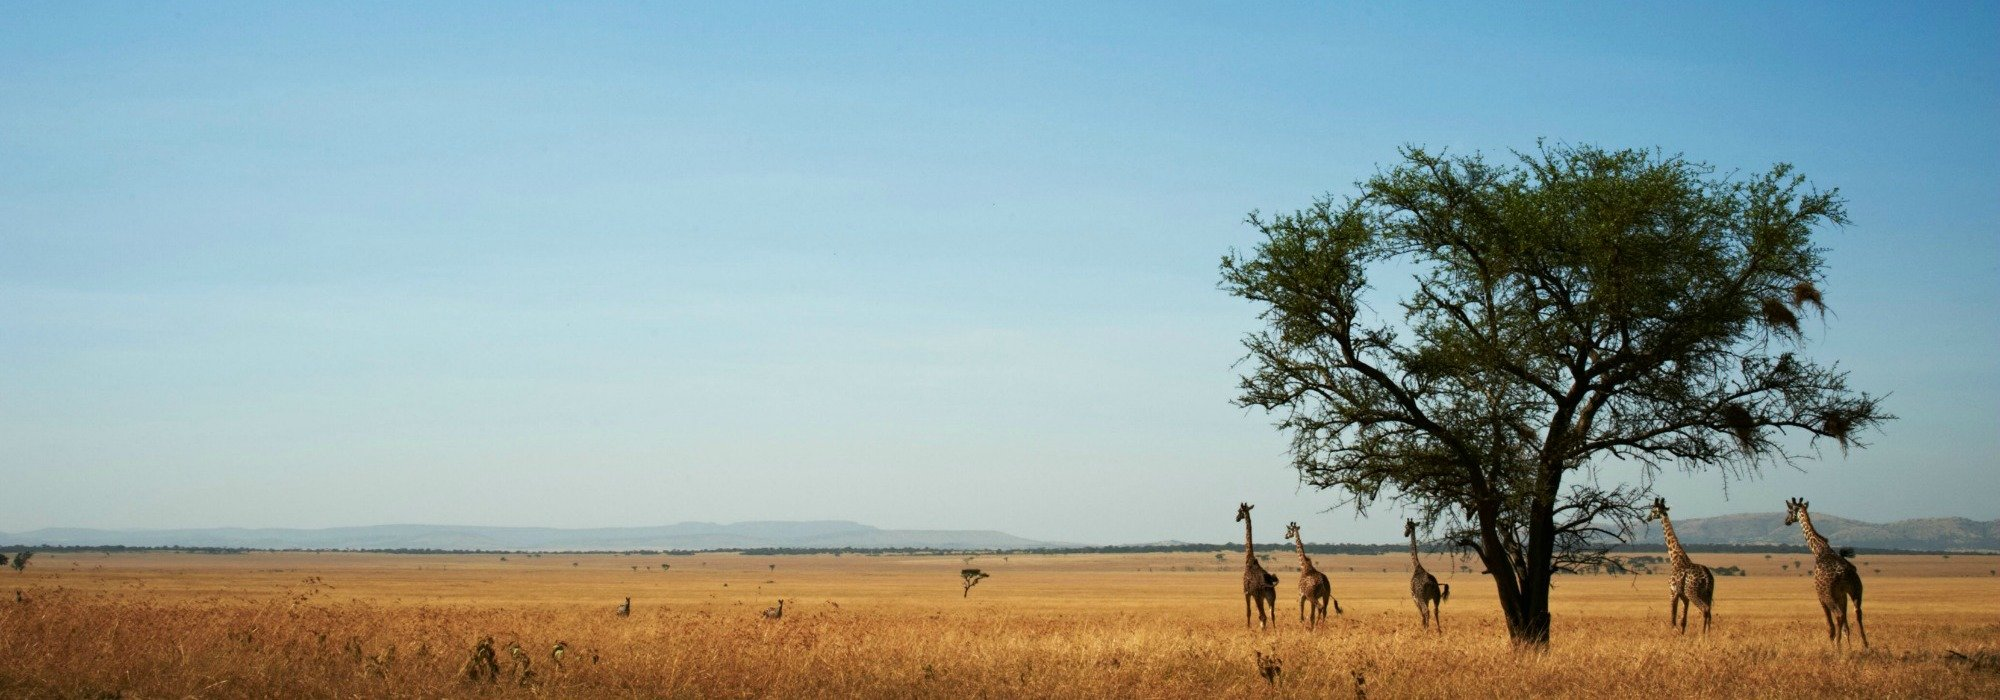 Serengeti Grumeti Reserves